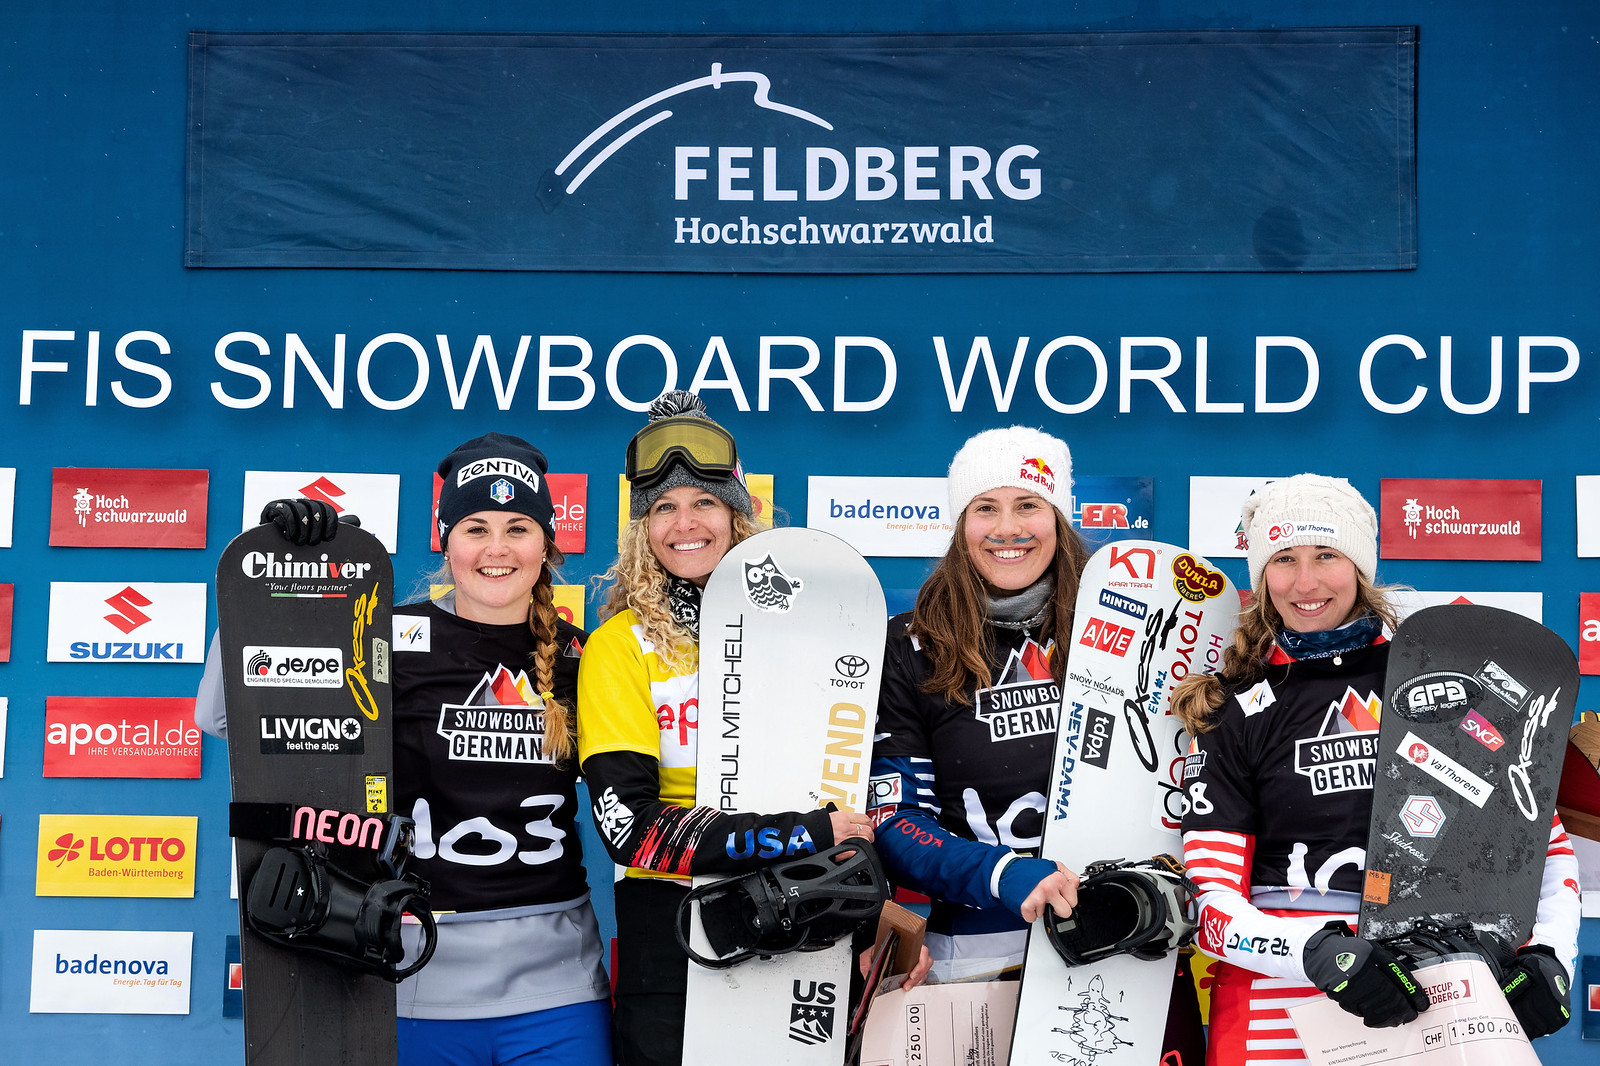 World Cup: Feldberg, Germany